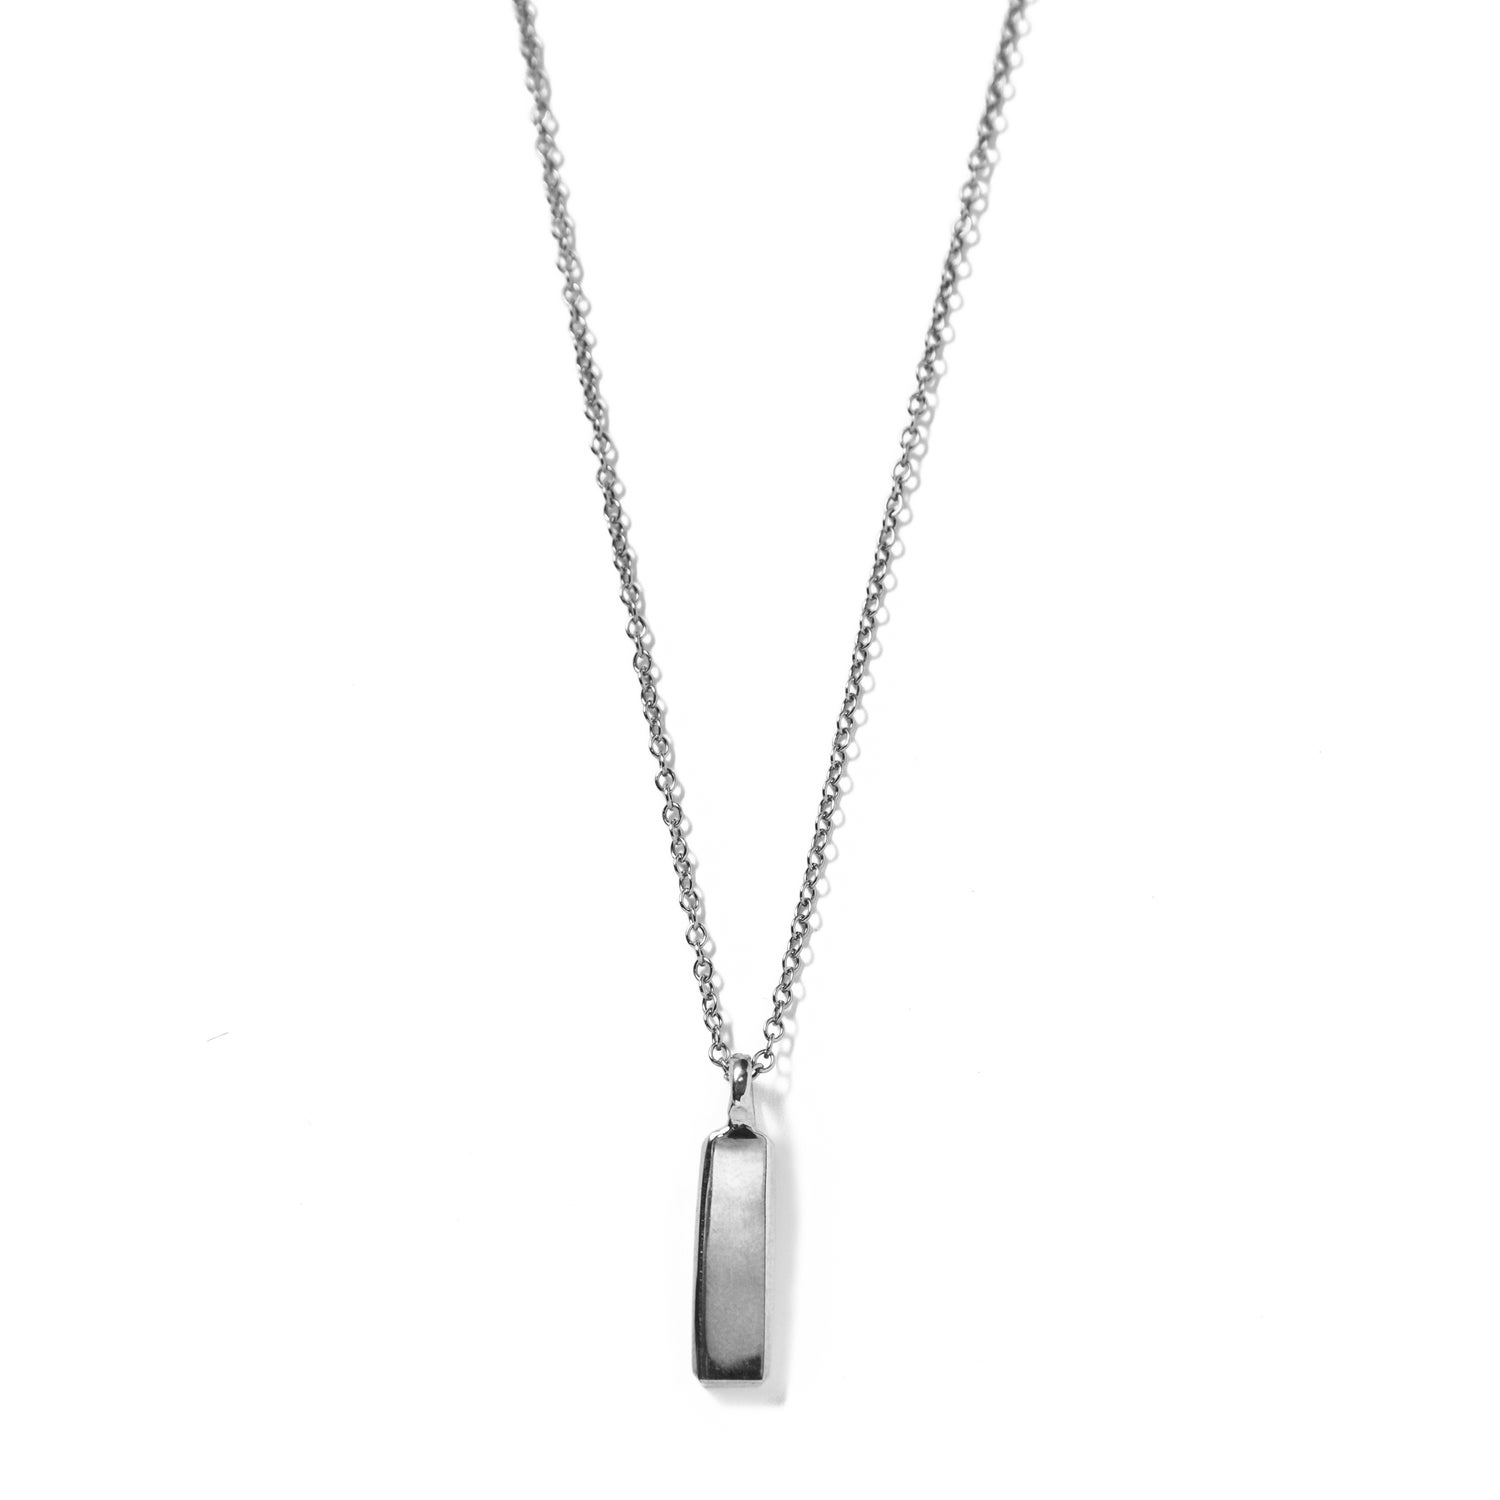 Image of The Brick necklace